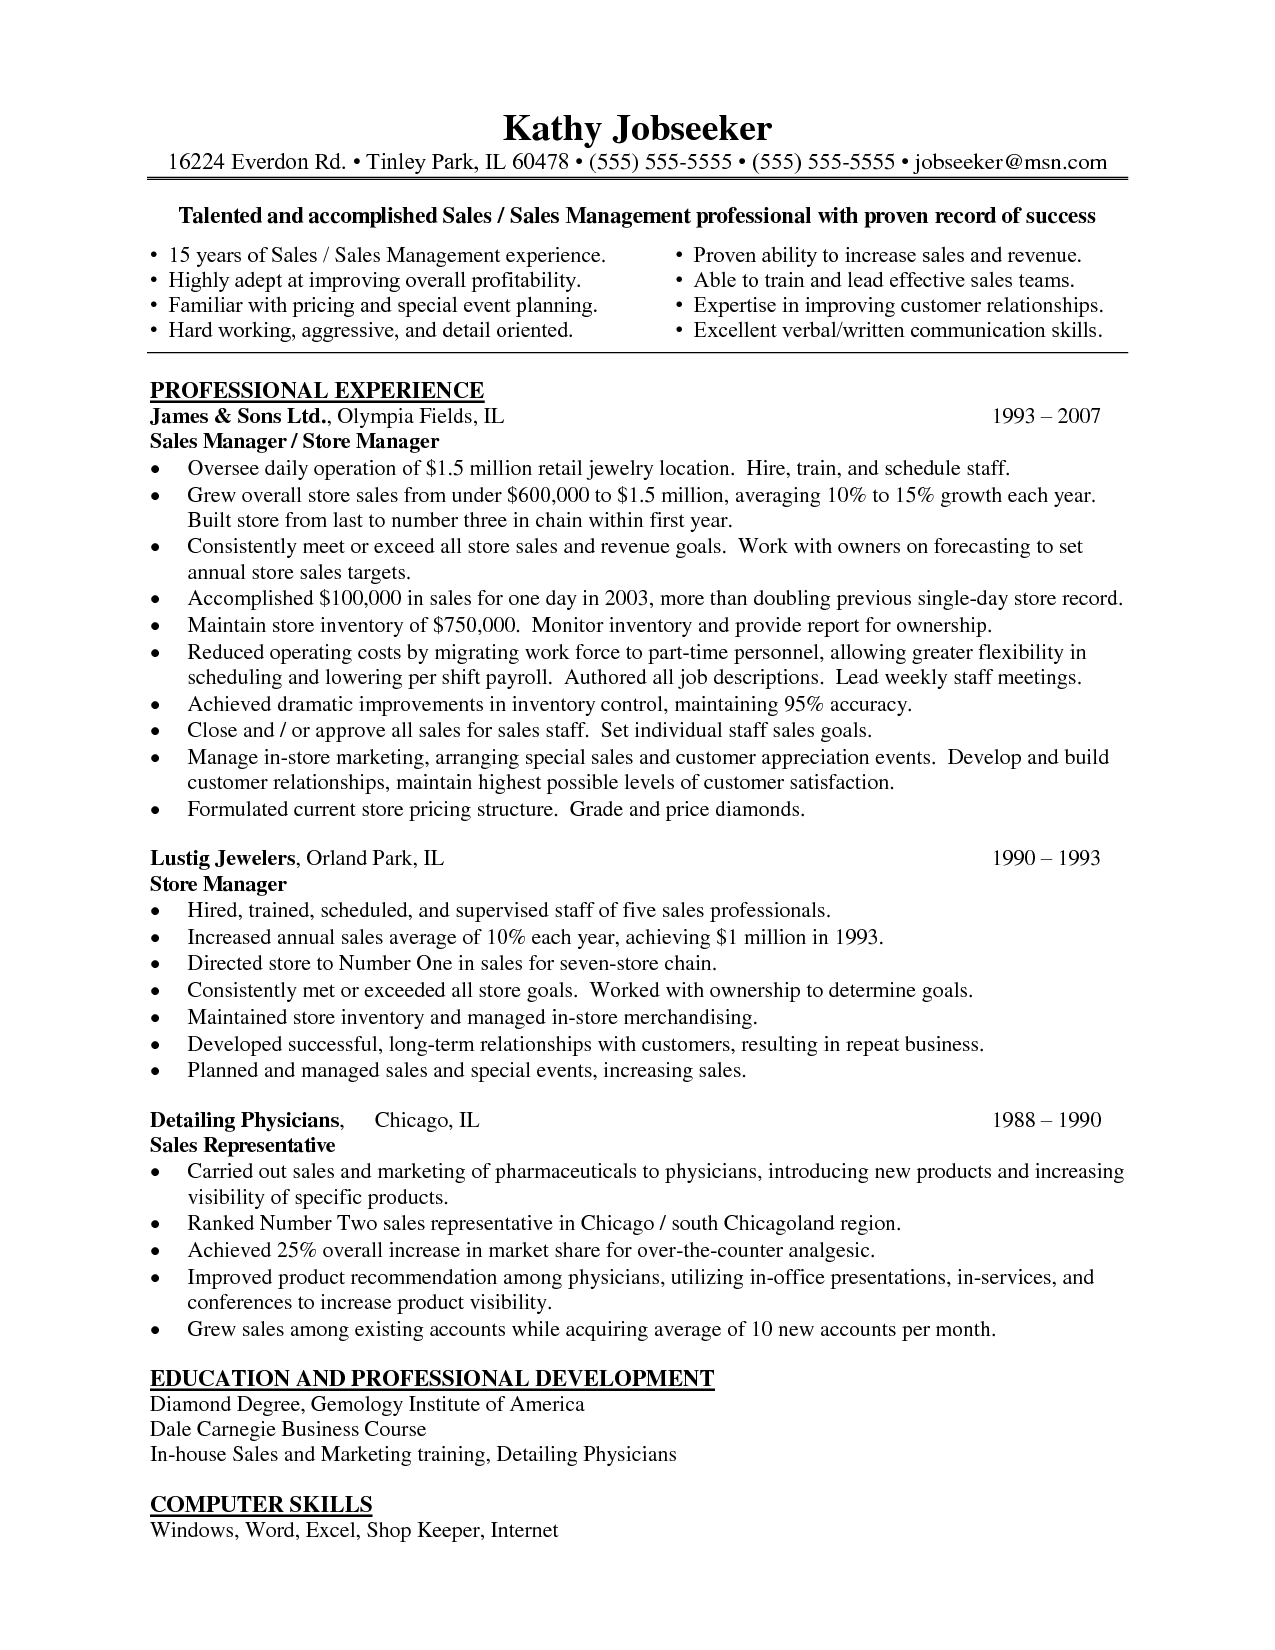 Resume Examples For Retail Store Manager | Sample Cover Letter For Retail  Management Job 4 Intended For Retail Management Resume Examples